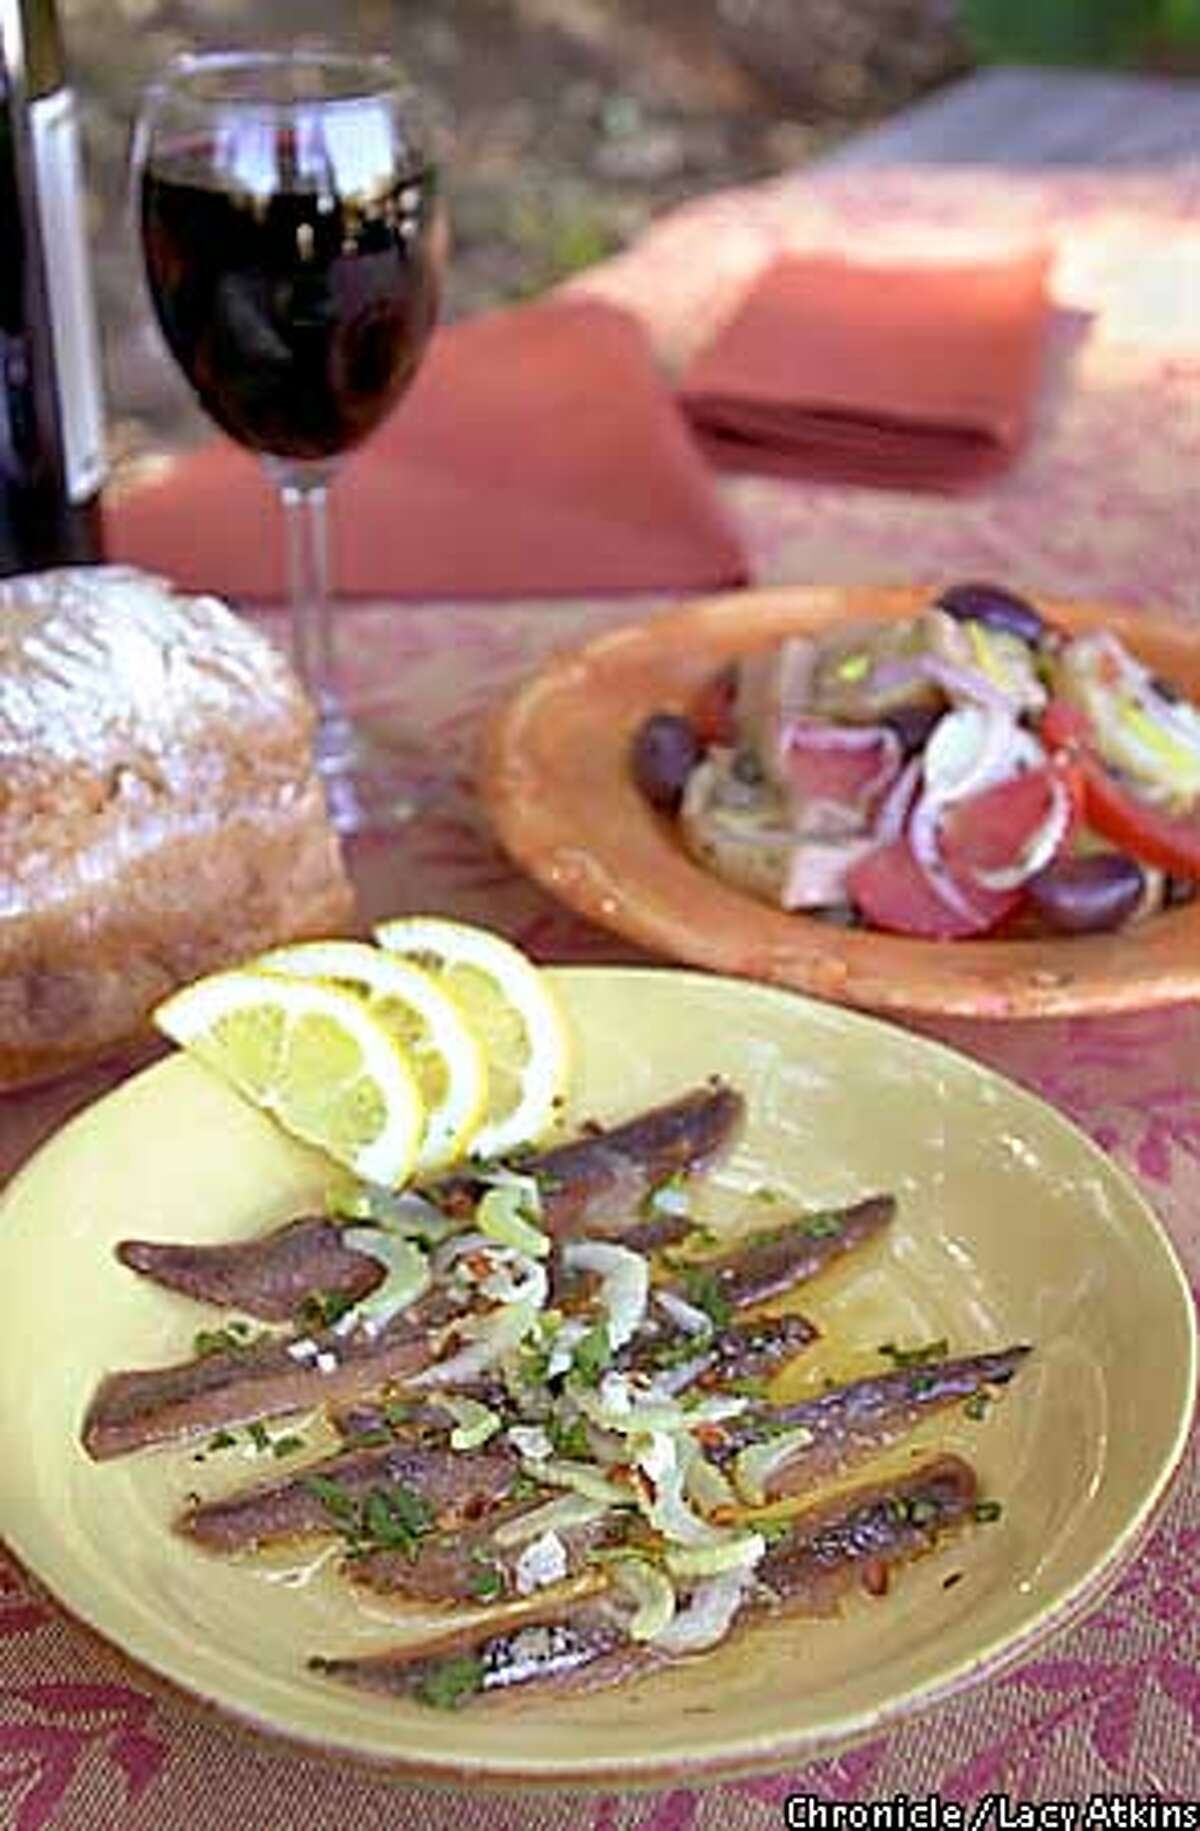 Marinated anchovies make refreshing additions to any outdoor menu. Chronicle photo by Lacy Atkins